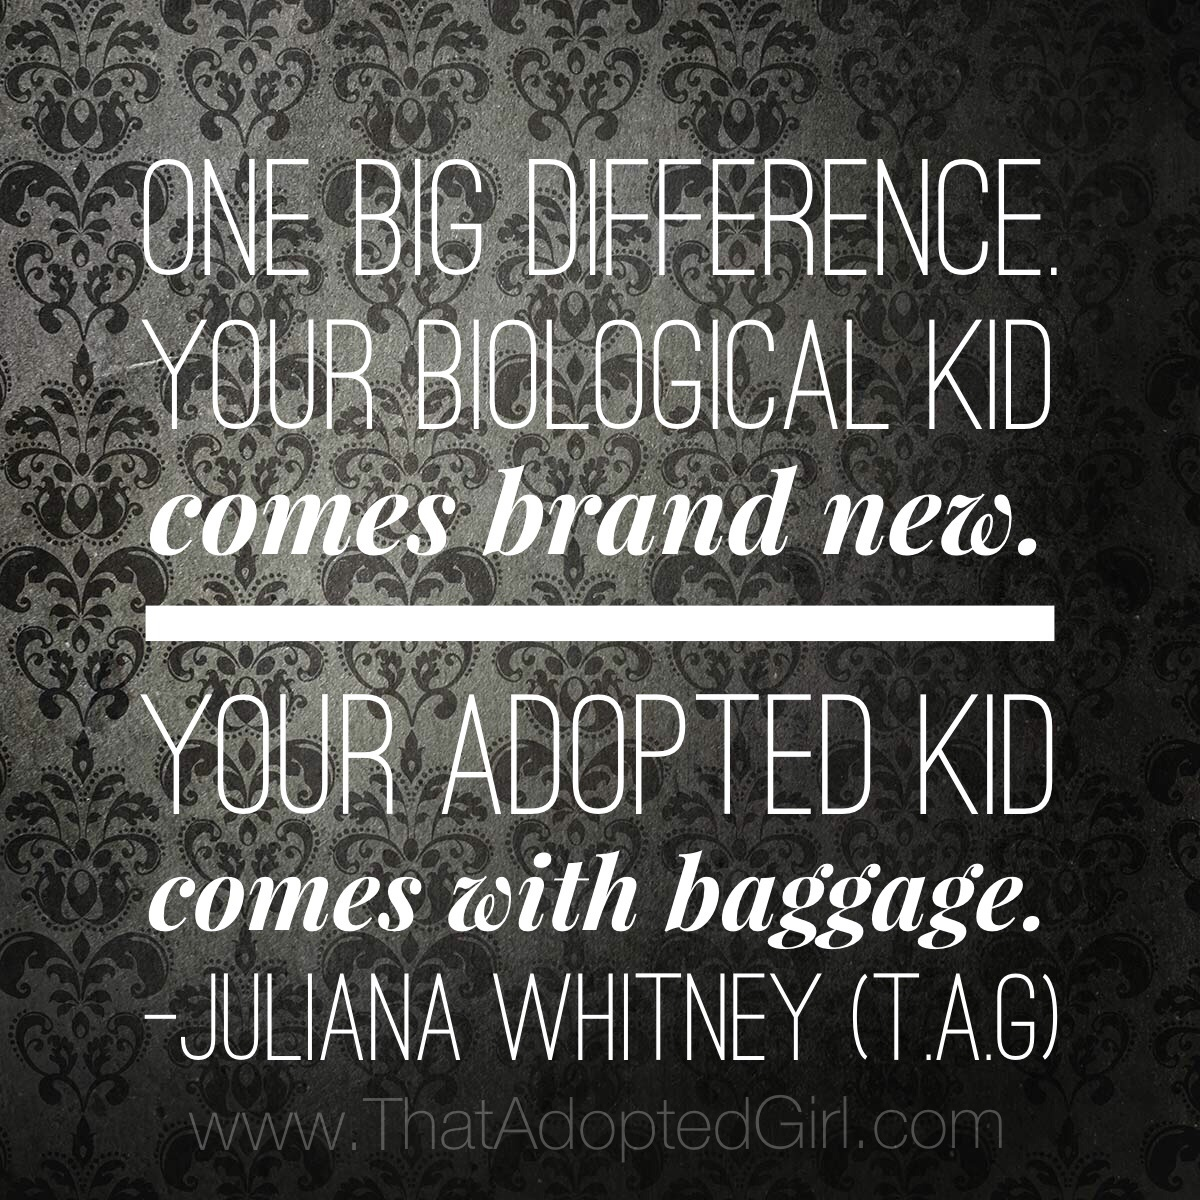 Adoption Quotes One Big Difference Between Your Adopted Kid And Your Biological